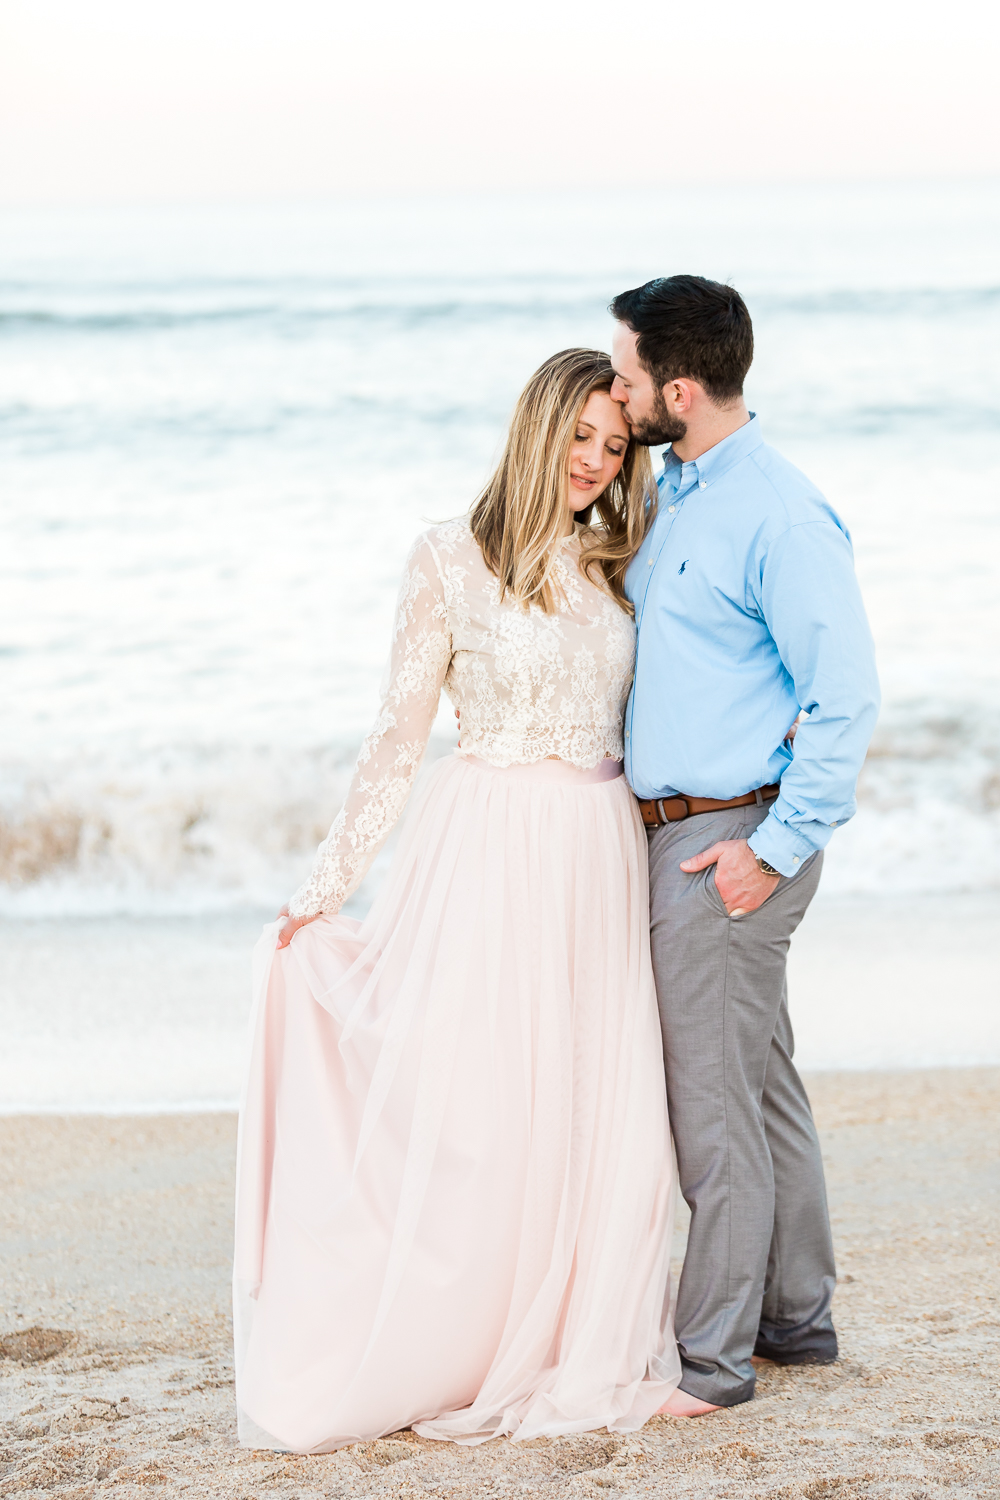 Sunset engagement pictures at the beach